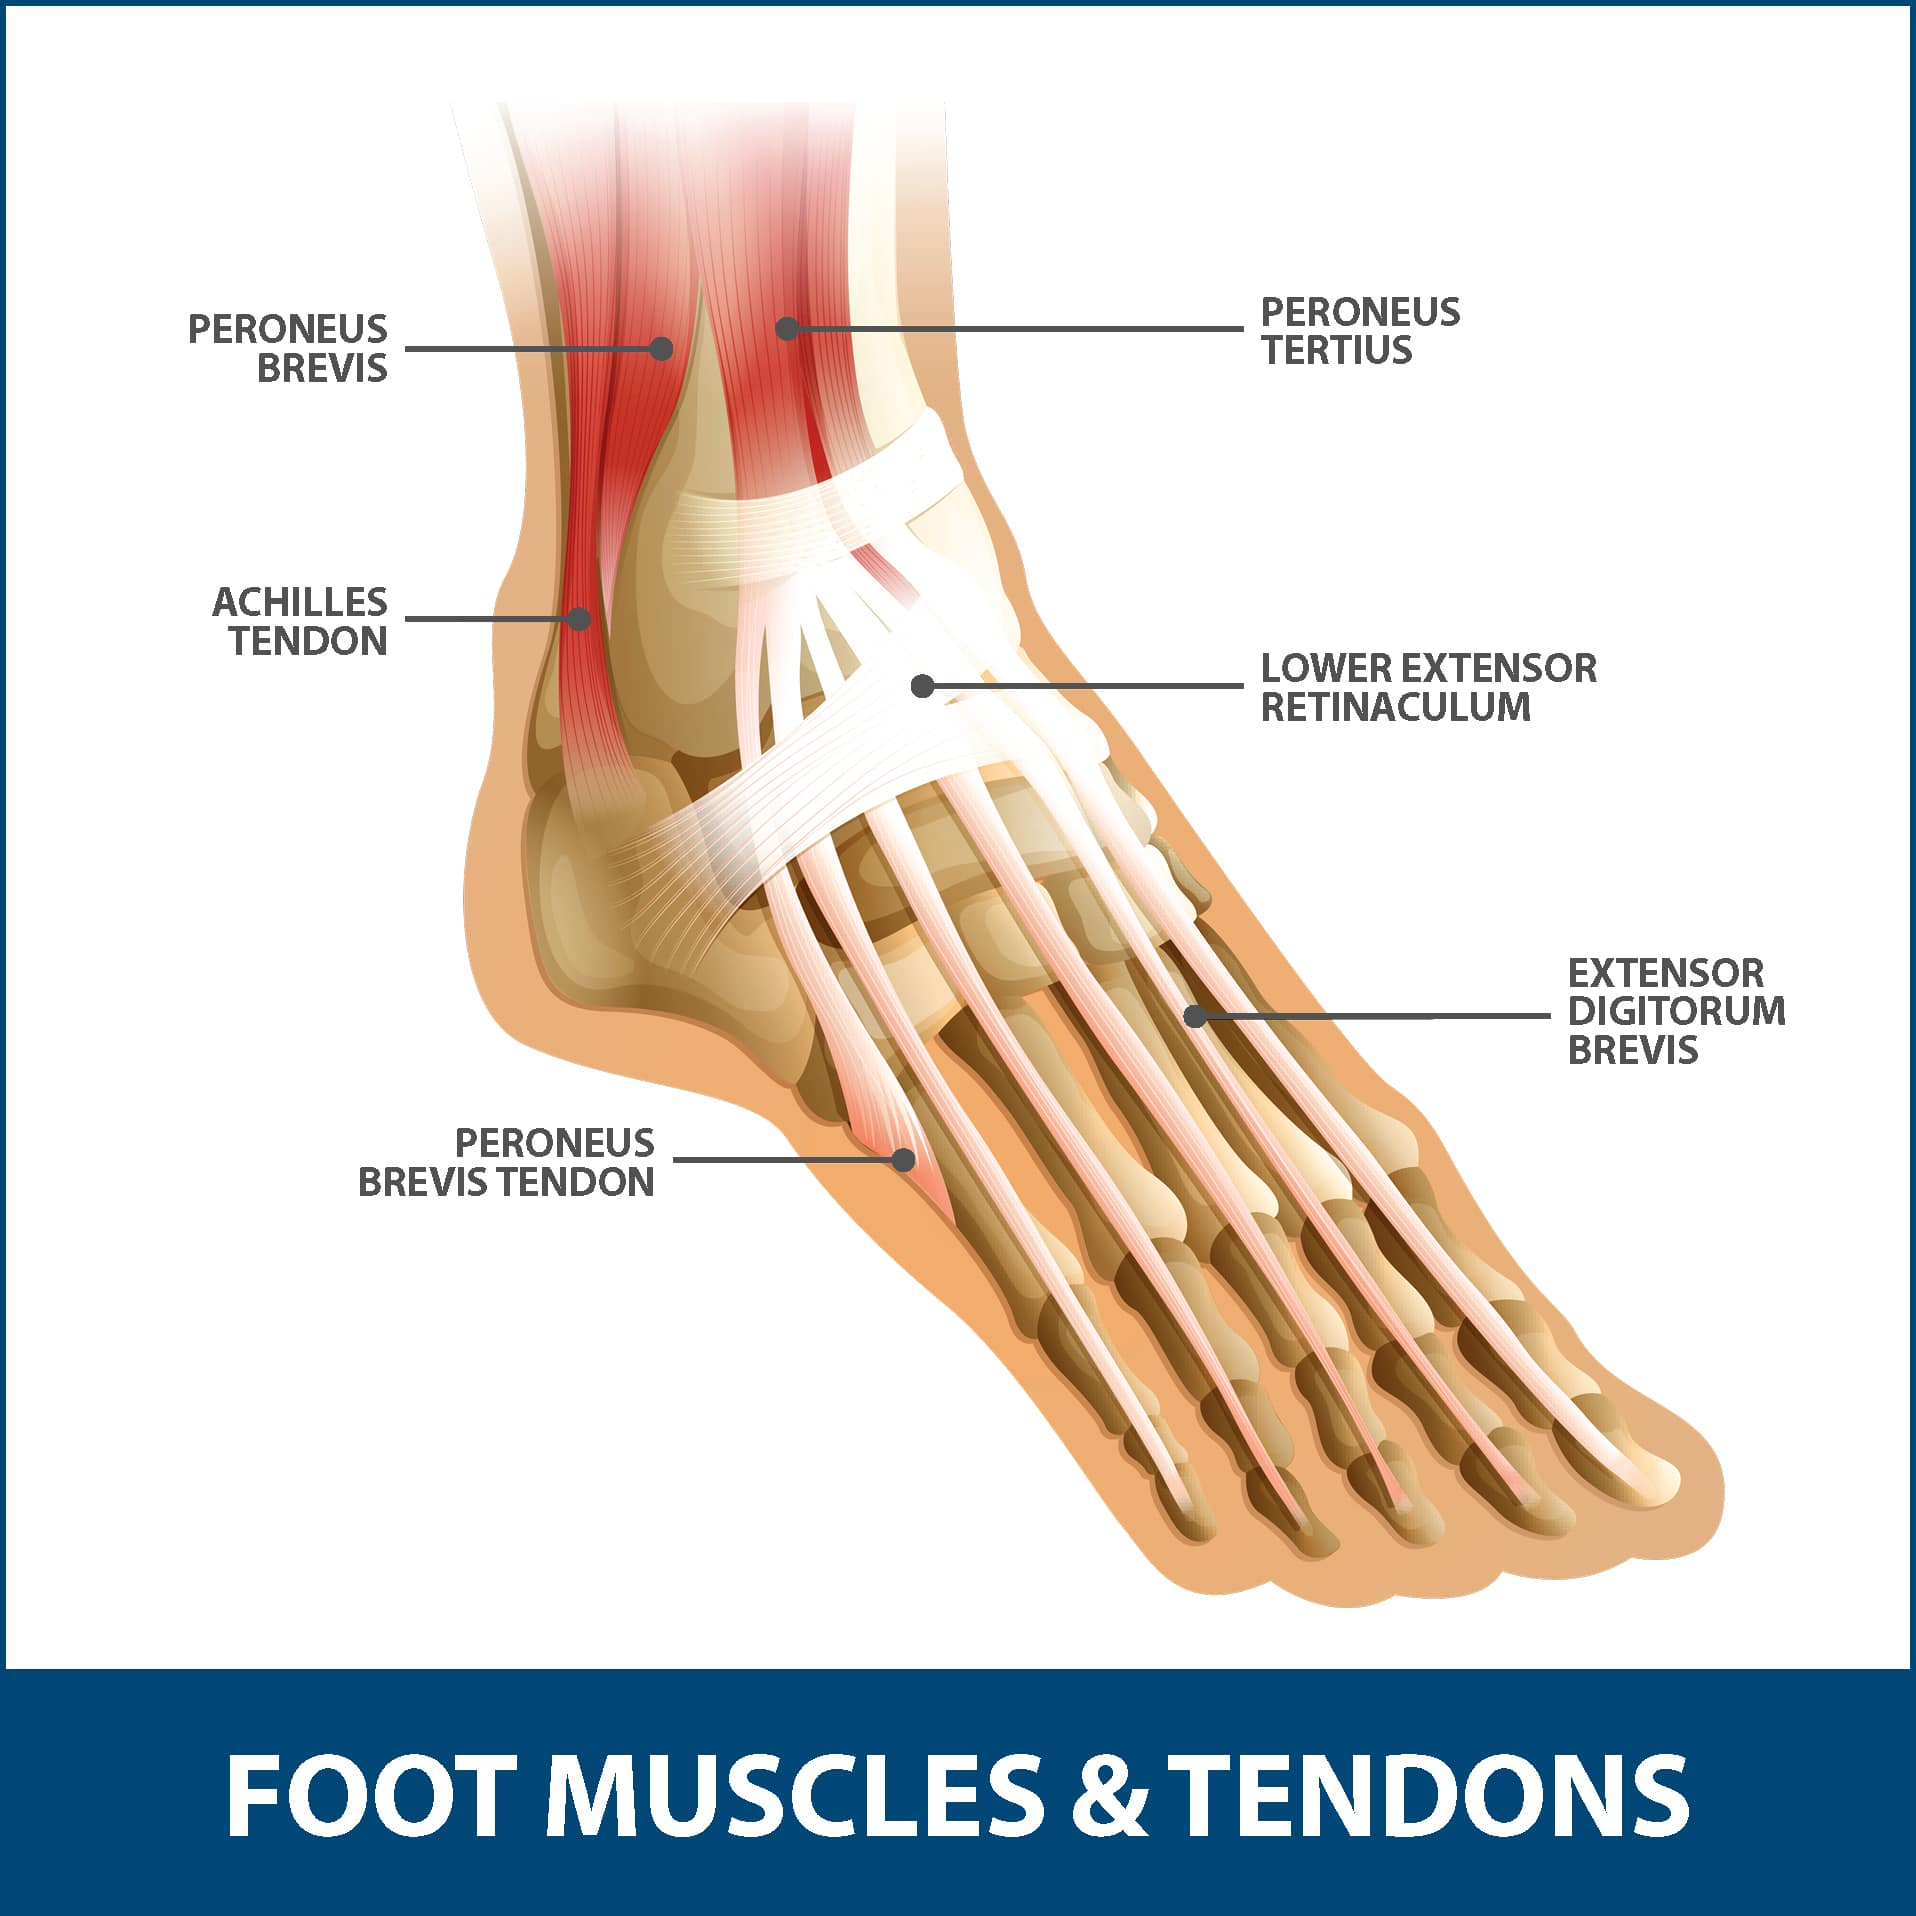 Achilles Tendon Rupture Foot Muscles and Tendons